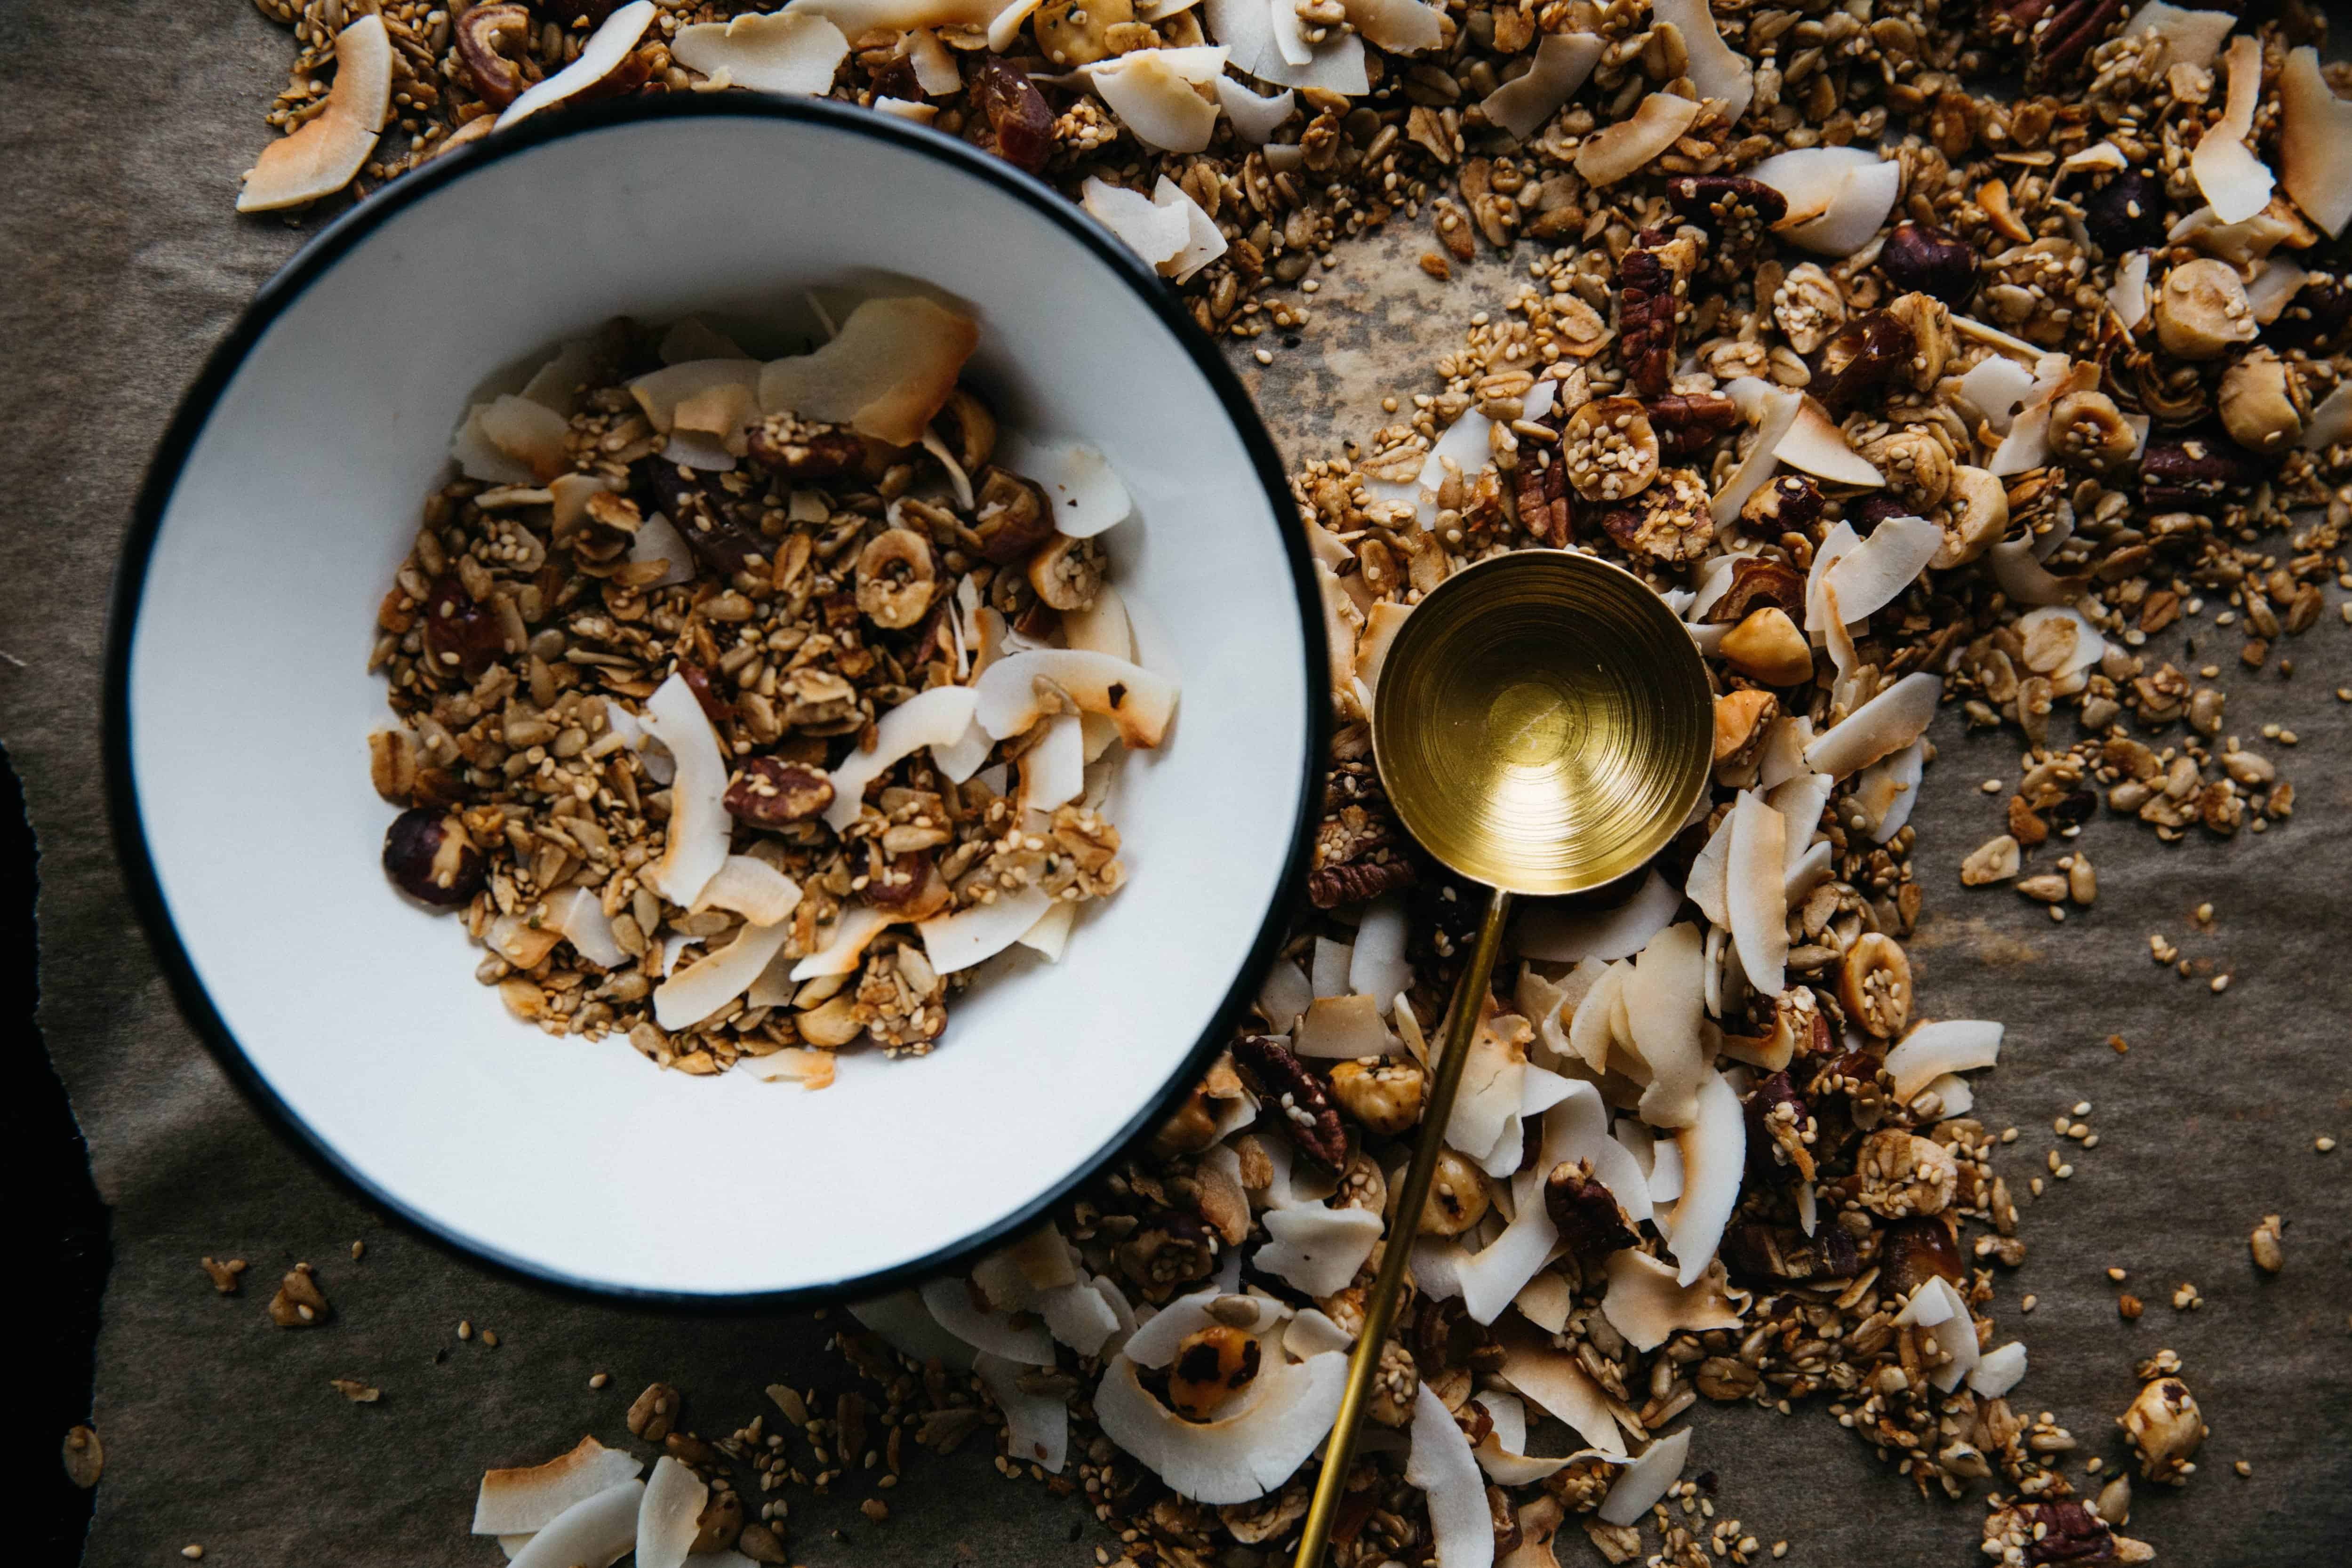 You are currently viewing The Coconut Part III: Superfood Coconut and its benefits